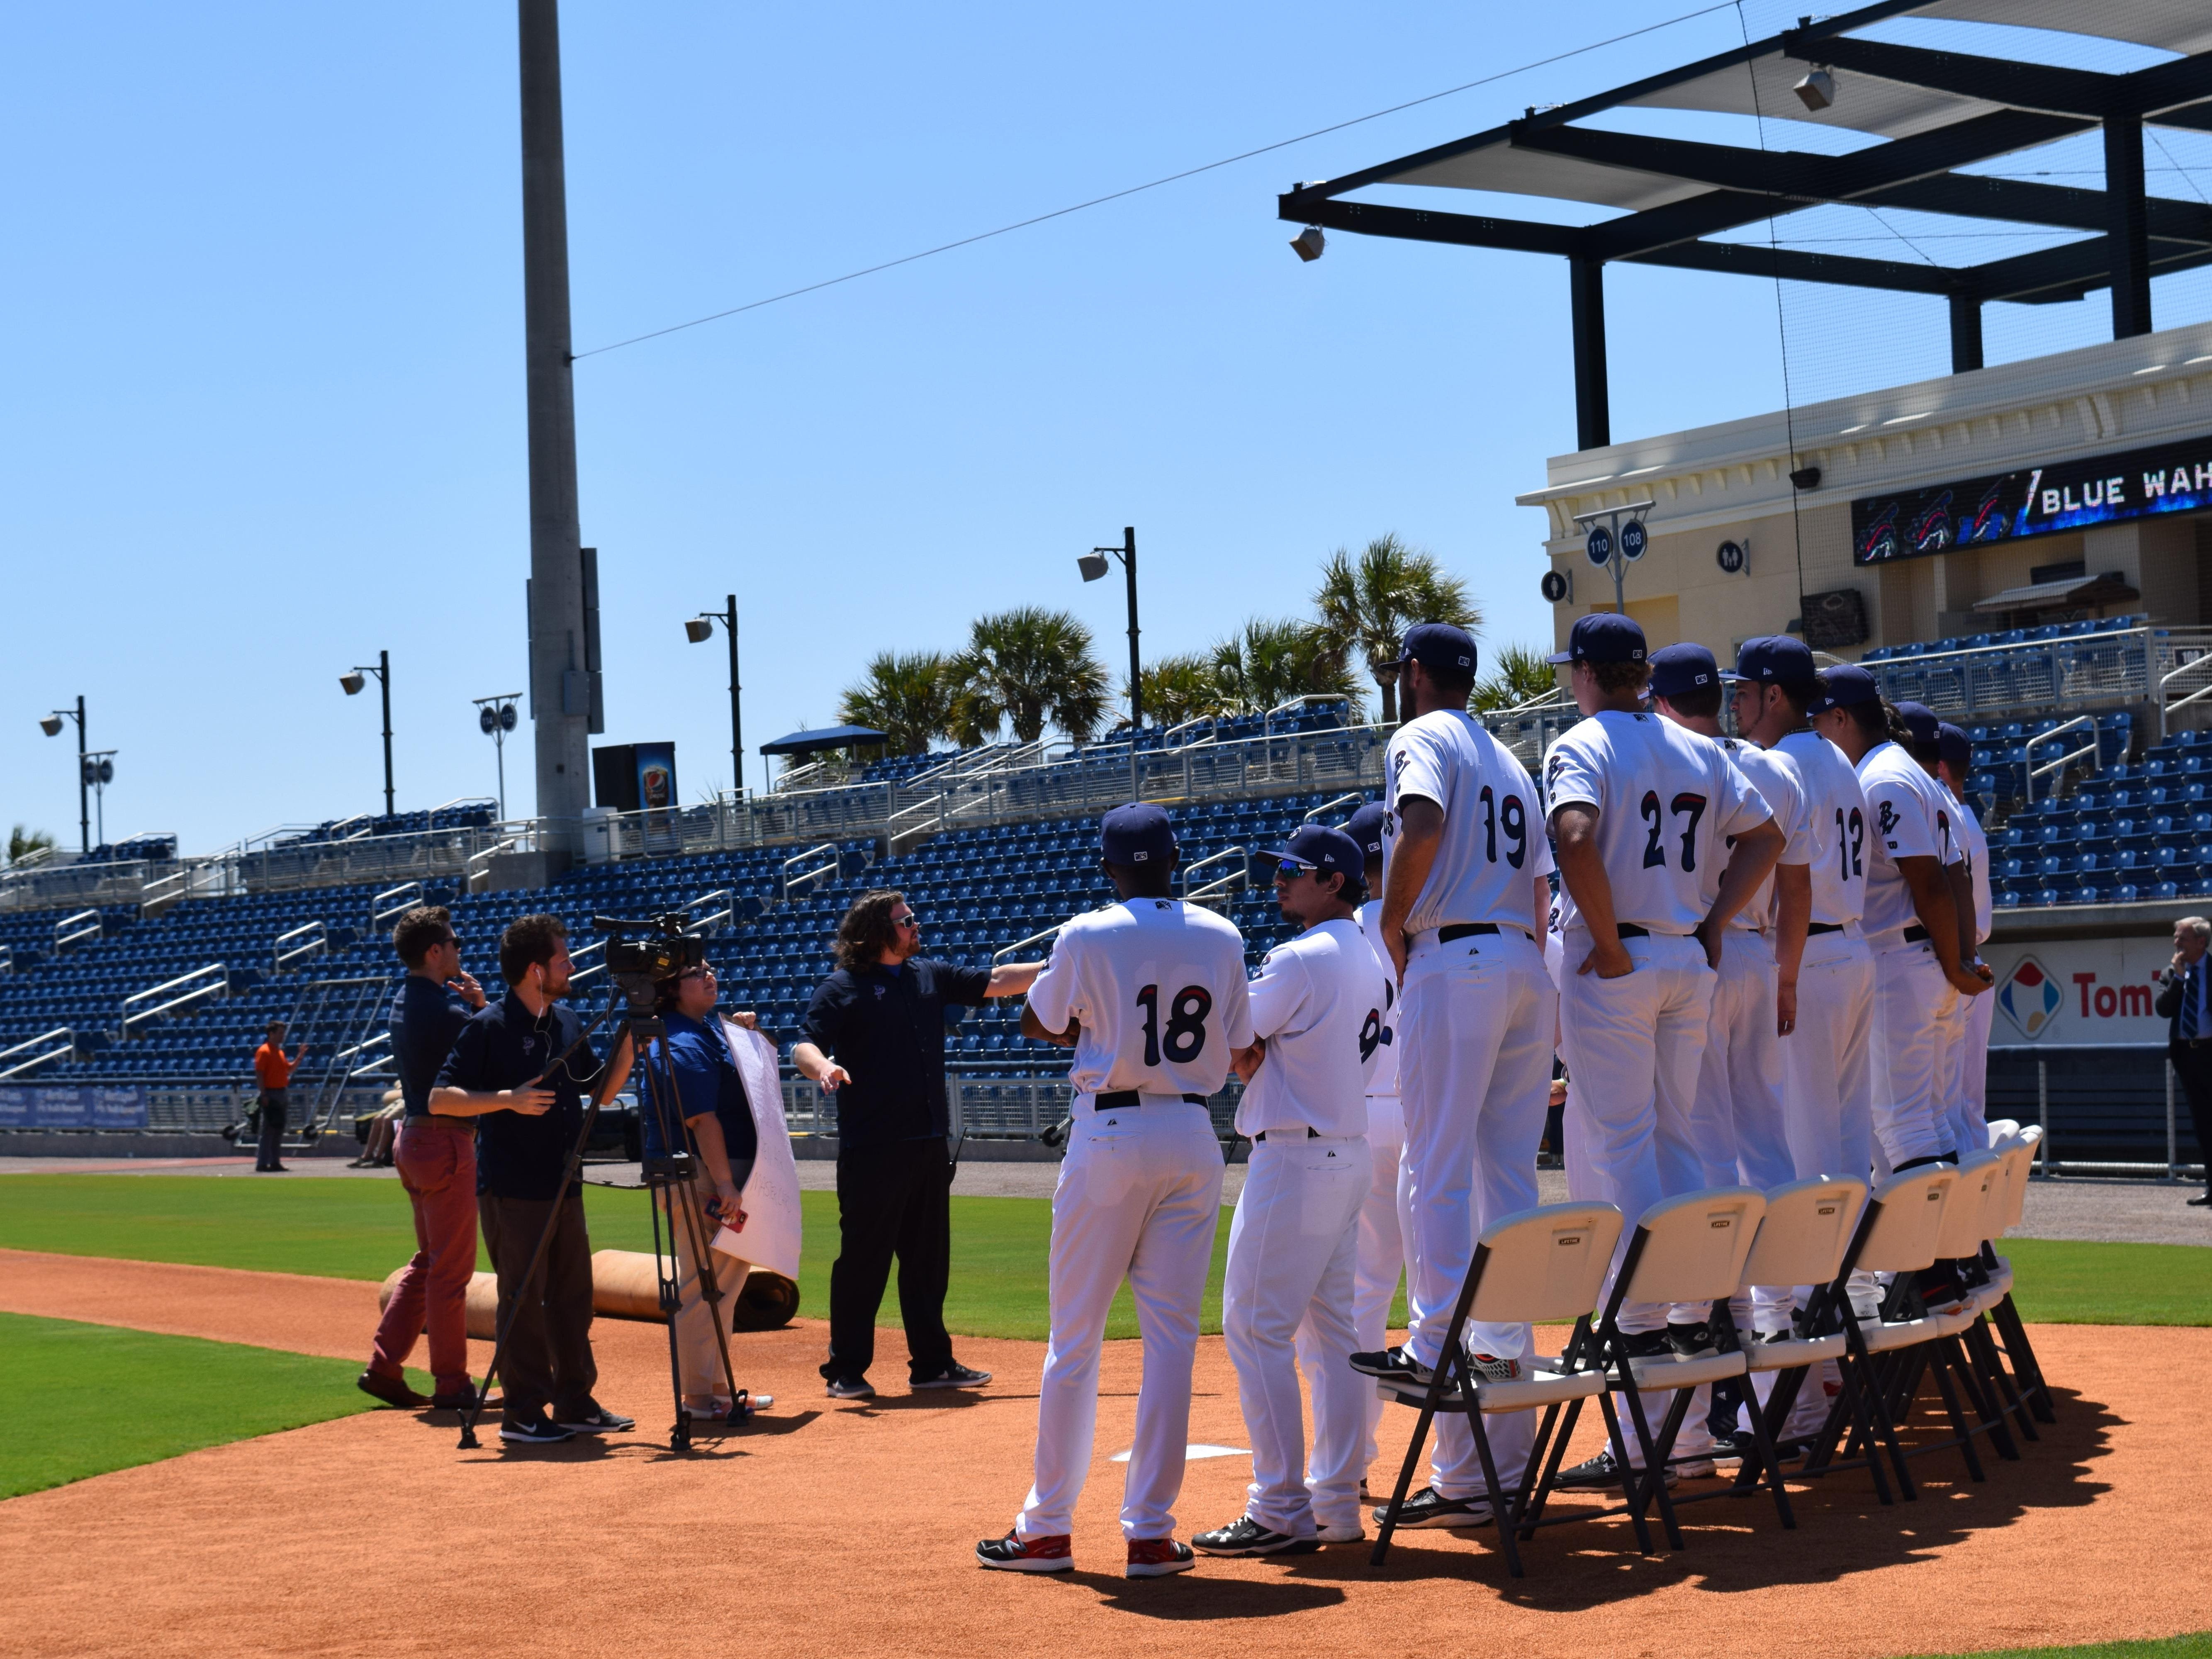 The Blue Wahoos players filmed a sponsor commercial Tuesday prior to their first practice at Blue Wahoos Stadium.